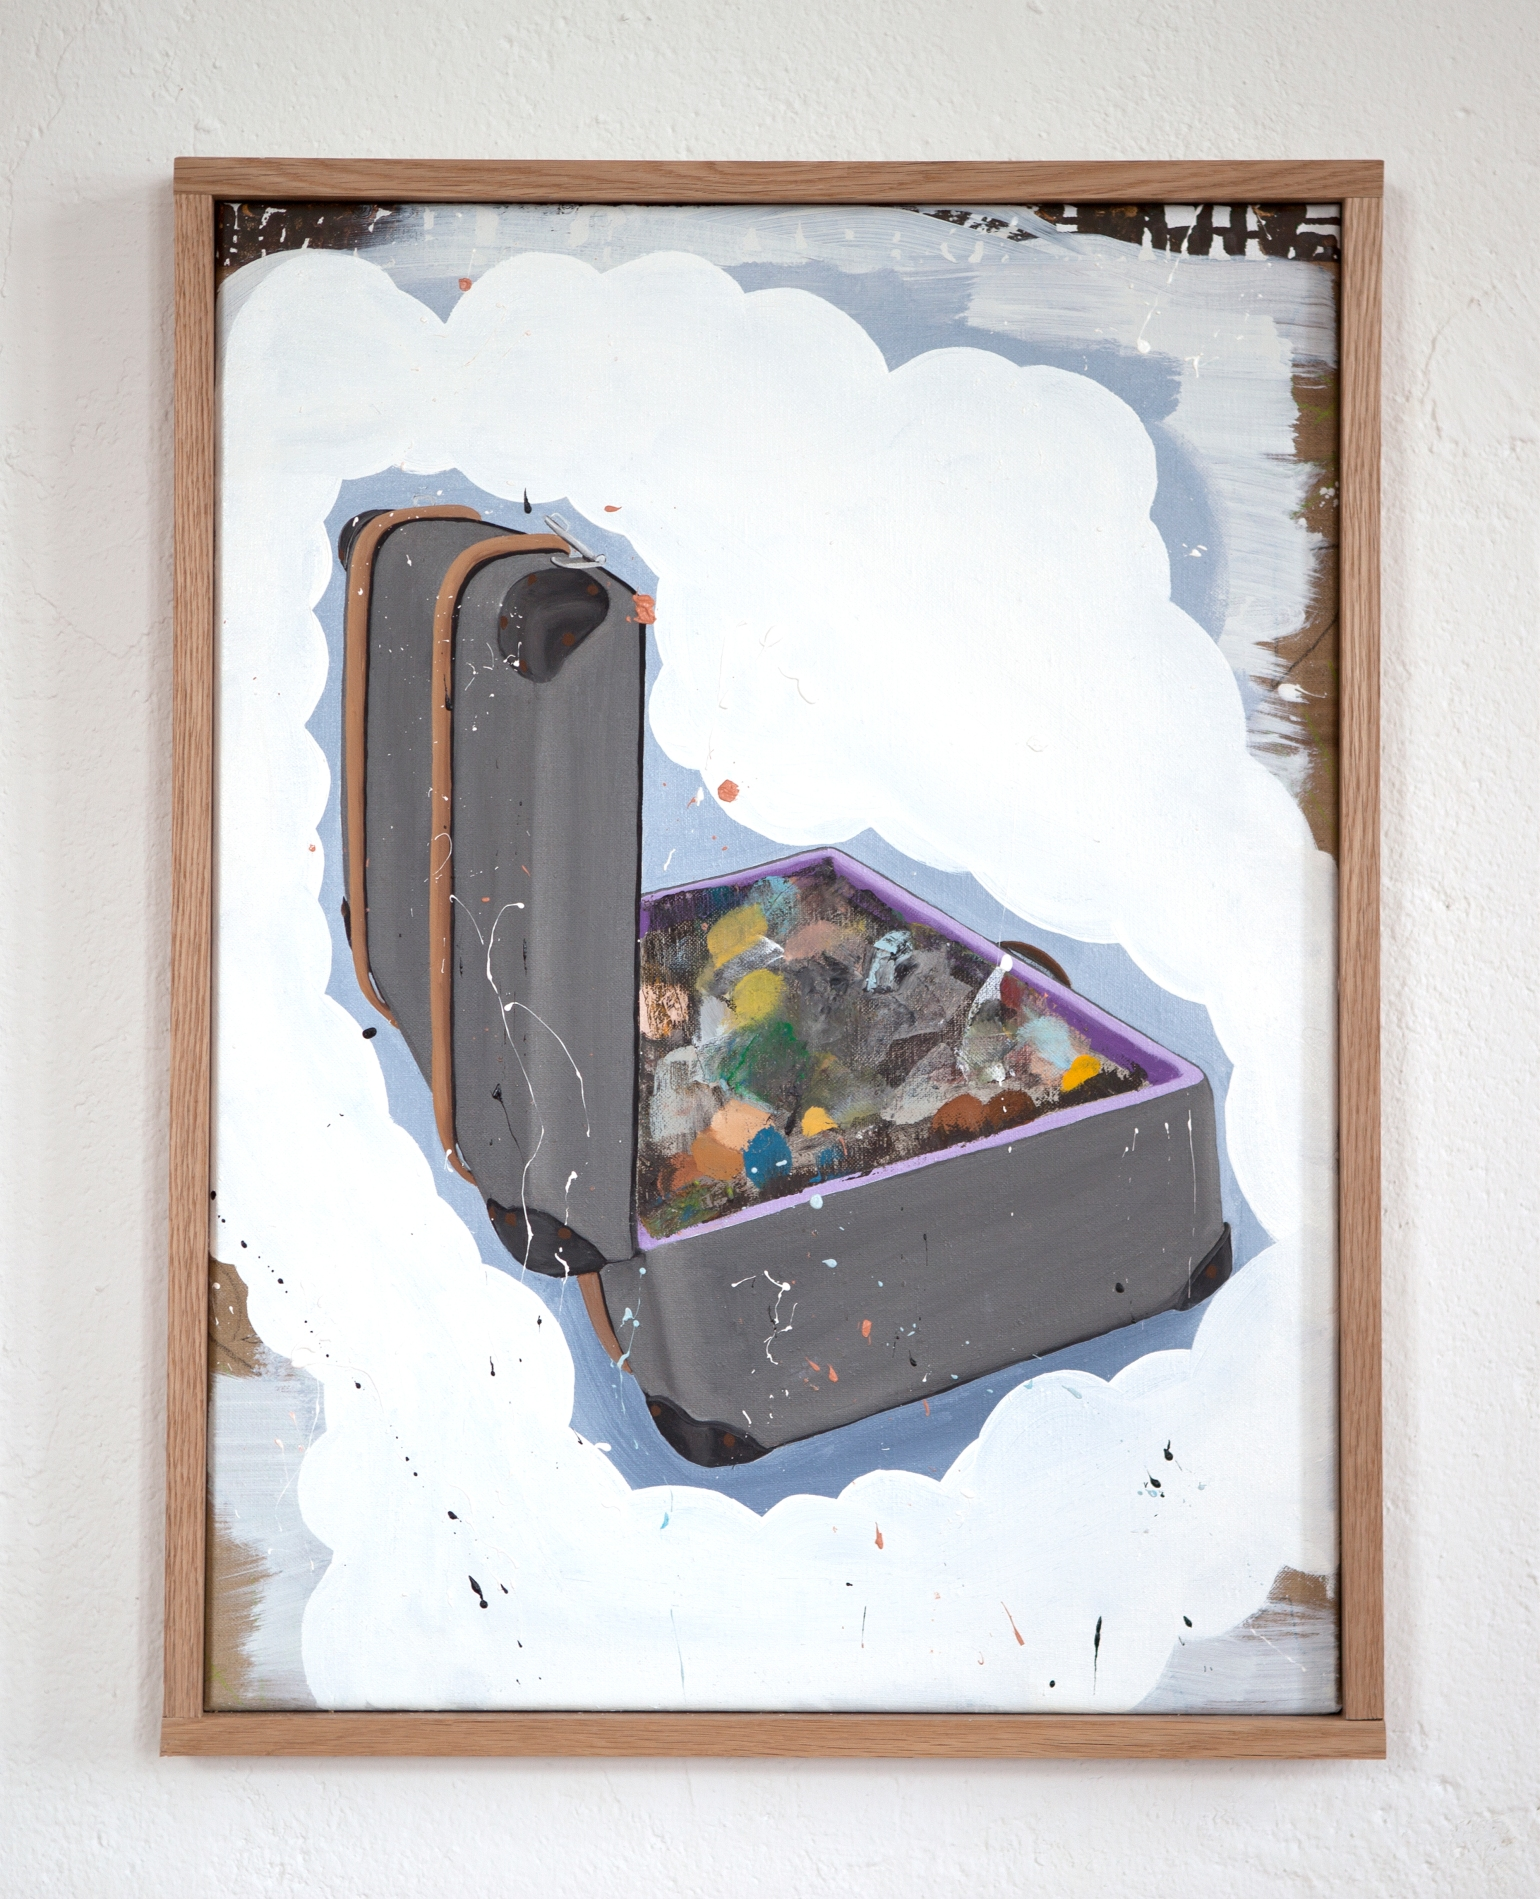 Lars Bjerre_The Robbery_Untitled, 45 x 60 cm. Oil on canvas.  Oak frame (48 x 63x4 cm). 2015